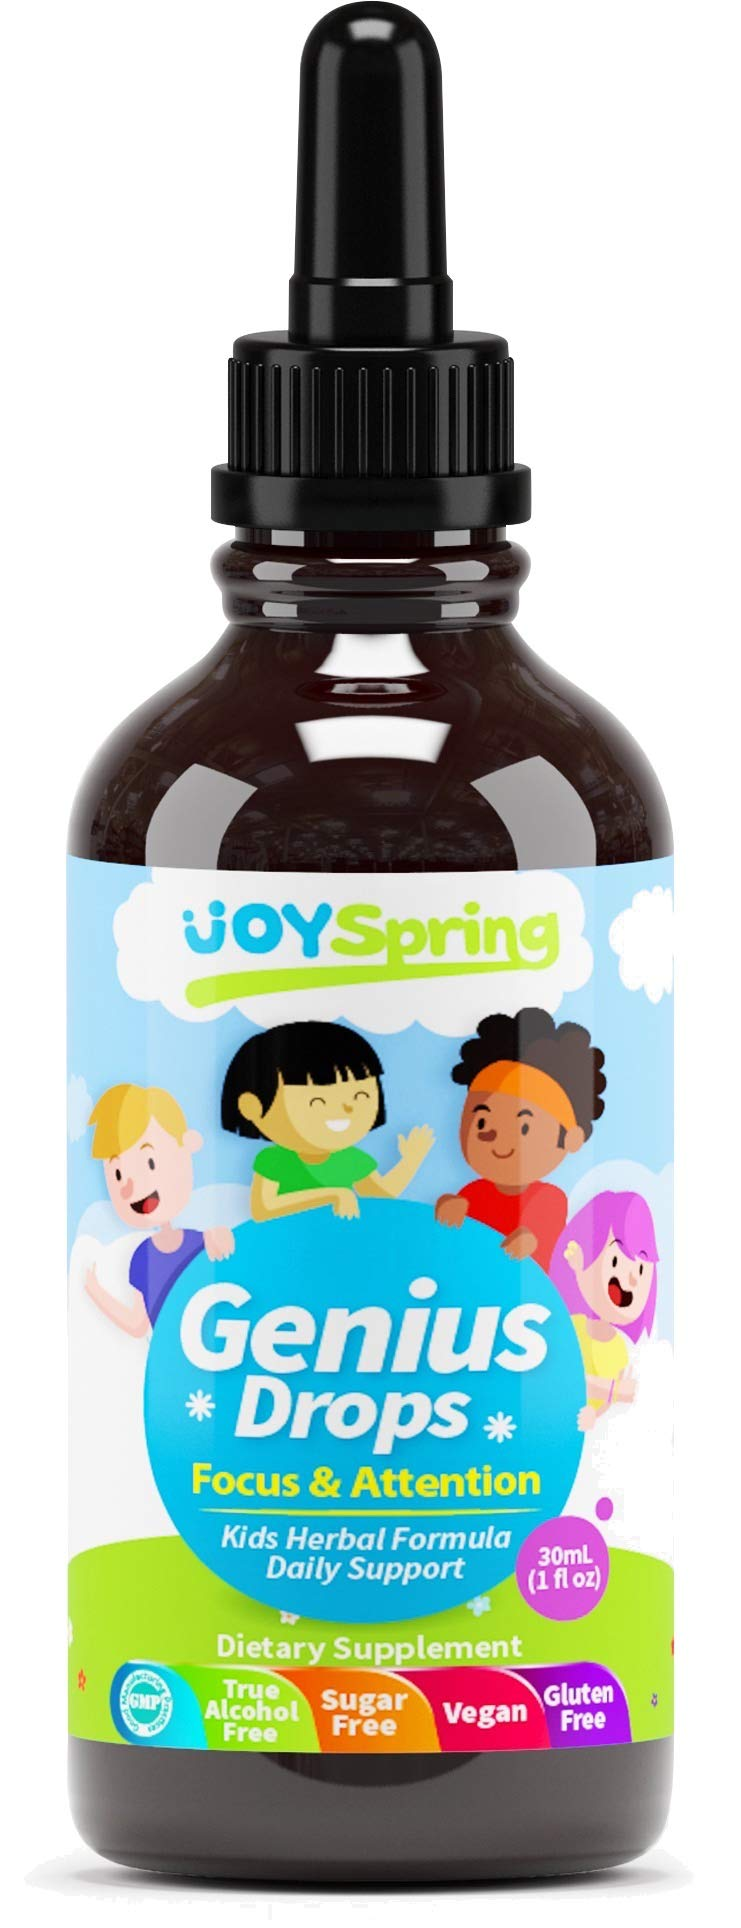 Best Organic Focus Supplement for Kids, Supports Healthy Brain Function to Improve Concentration & Attention for School, Natural Calming Supplement, Great Tasting Liquid Vitamins (4 oz)